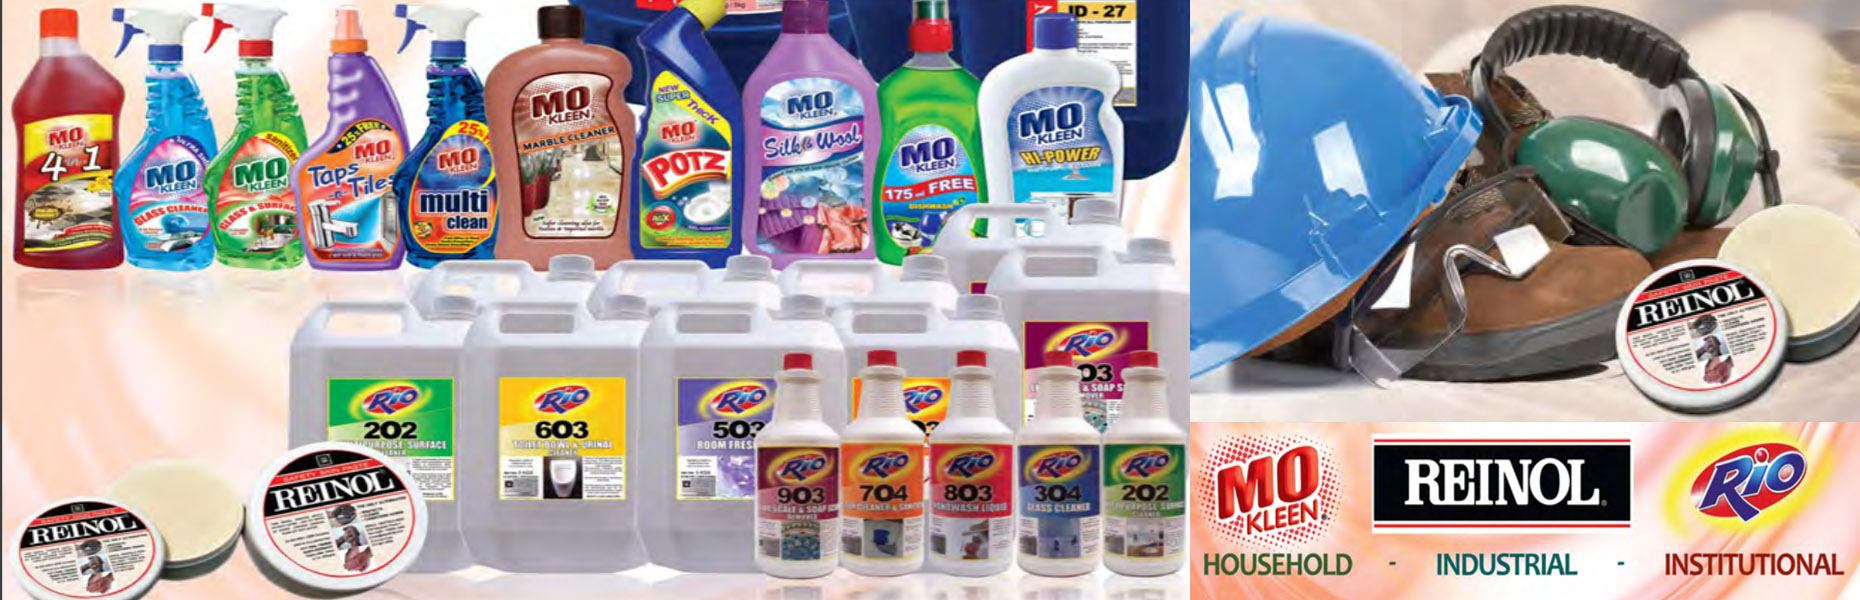 reinol-hand-cleaners-products-dubai